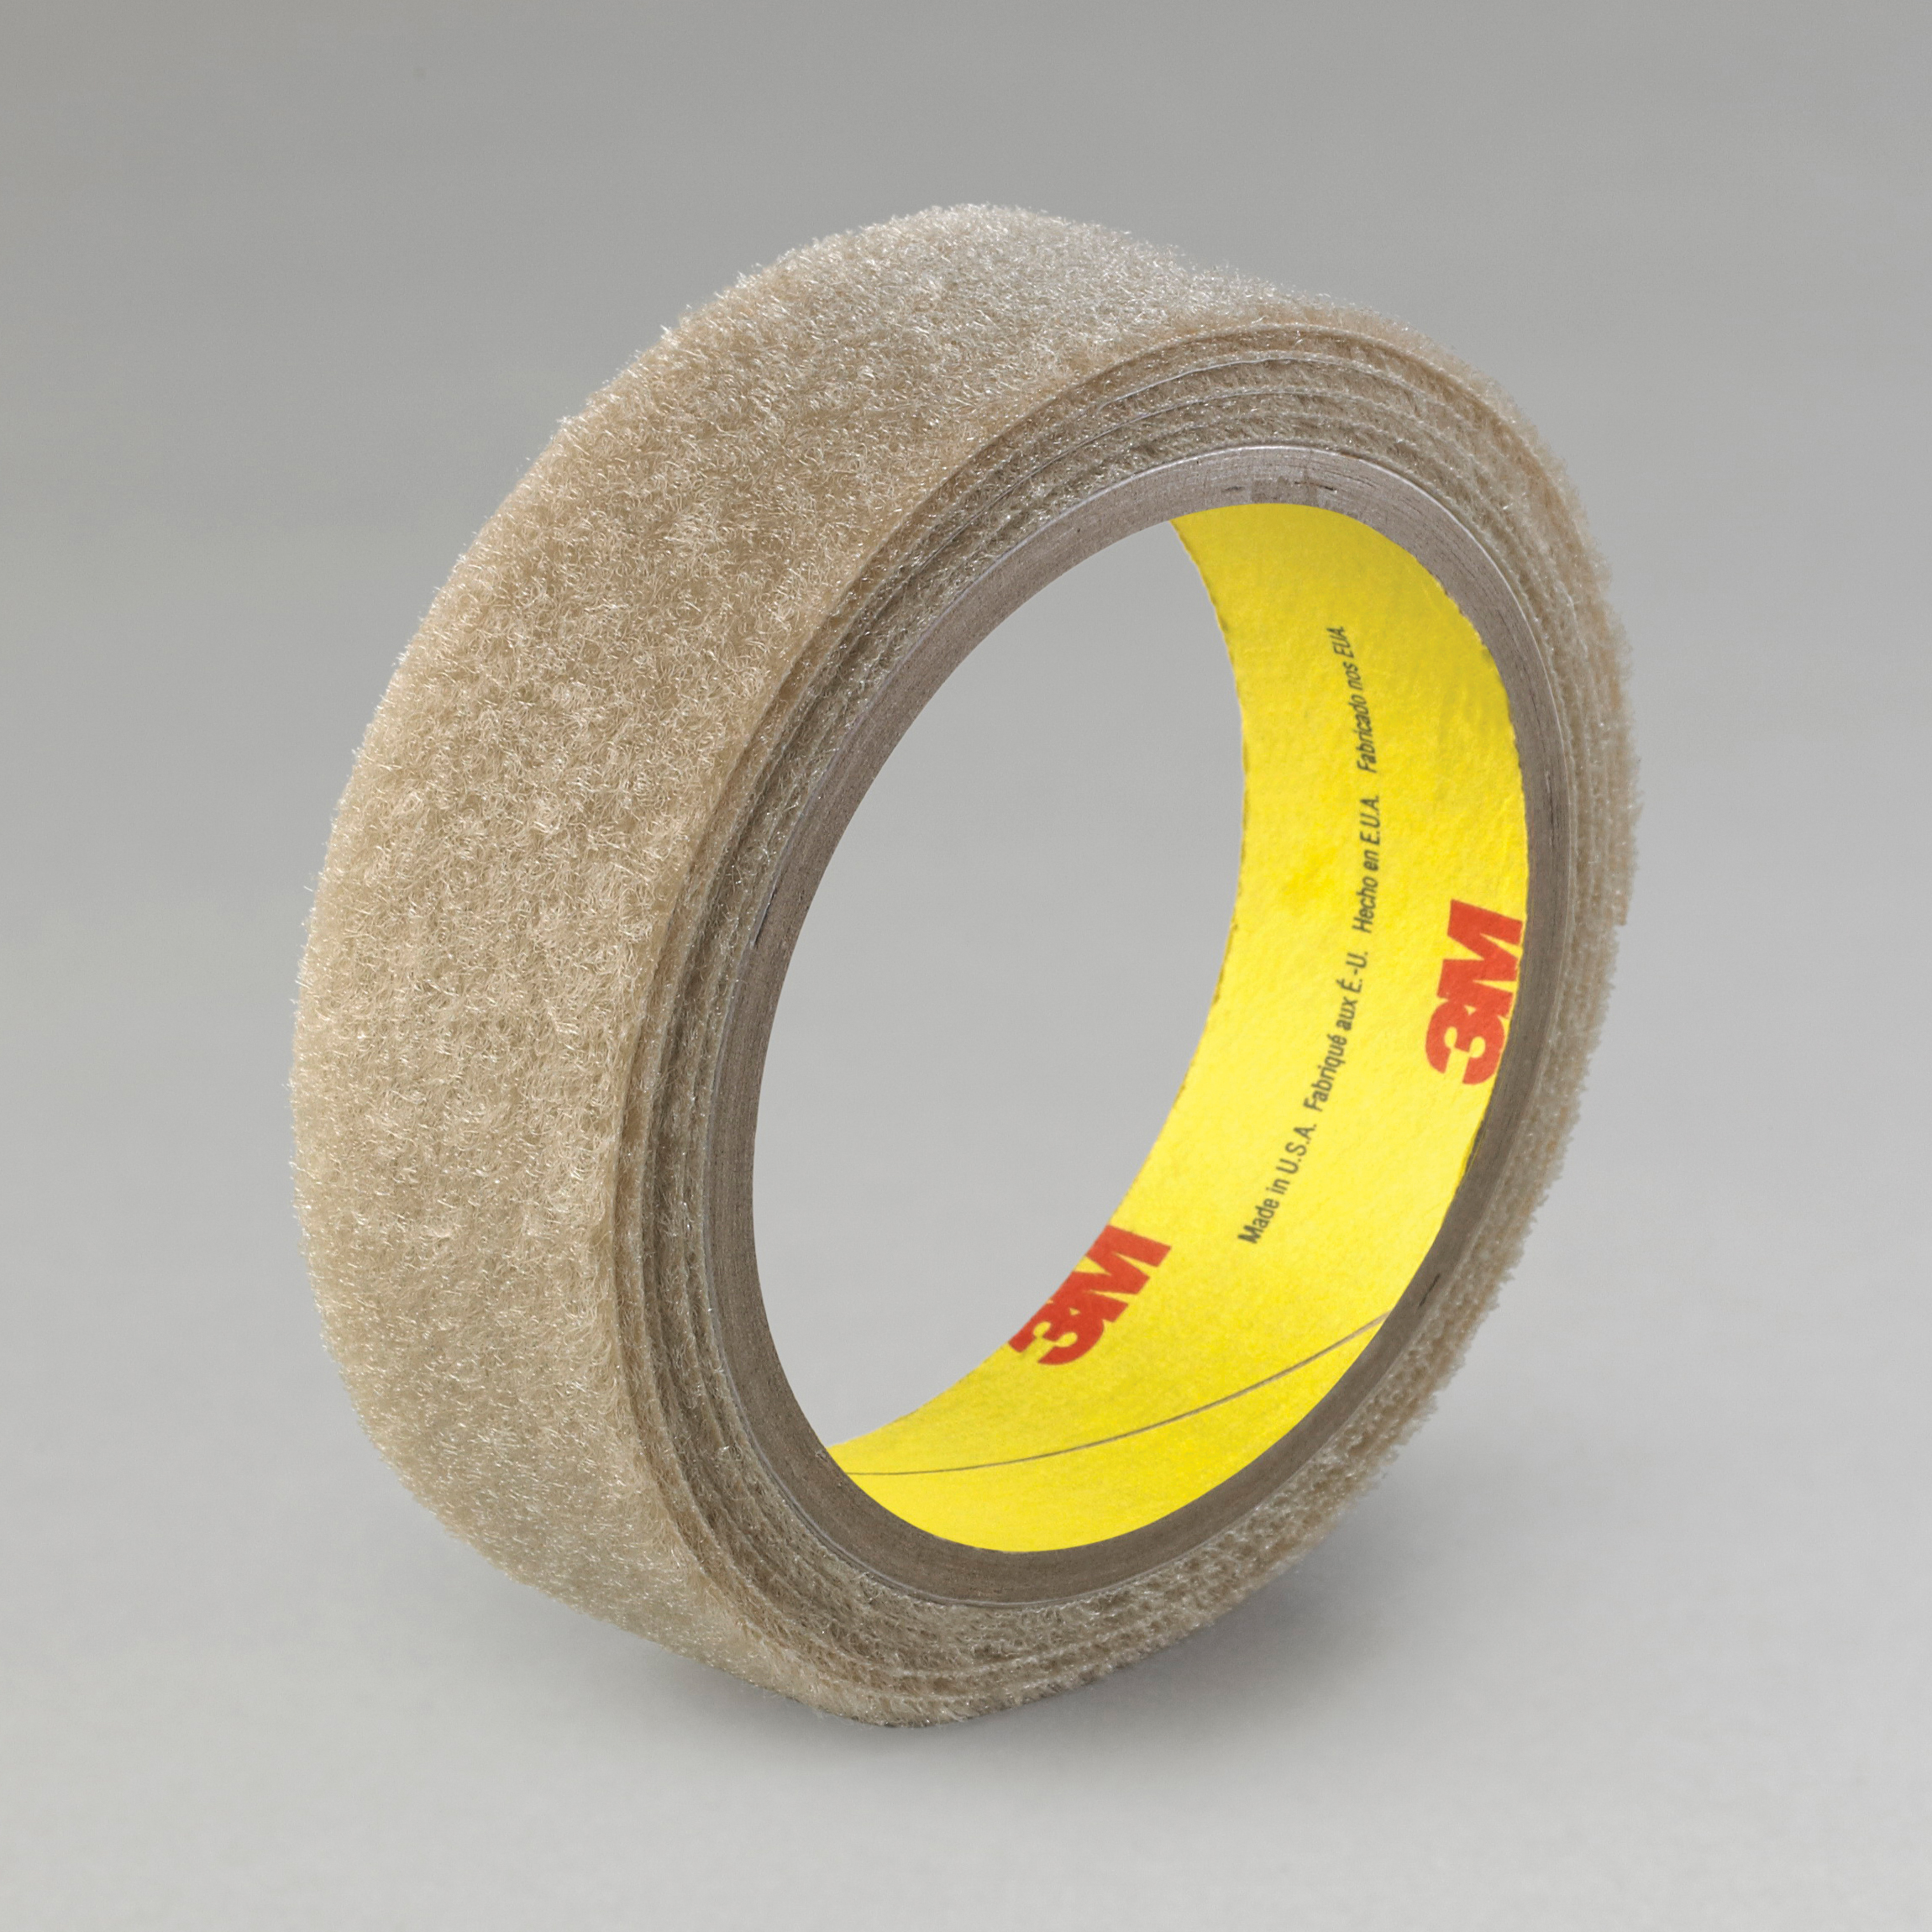 3M™ 021200-62678 Non-Adhesive Reclosable Loop Fastener Tape, 50 yd L x 2 in W, 0.15 in THK Engaged, Woven Nylon Backing, Beige